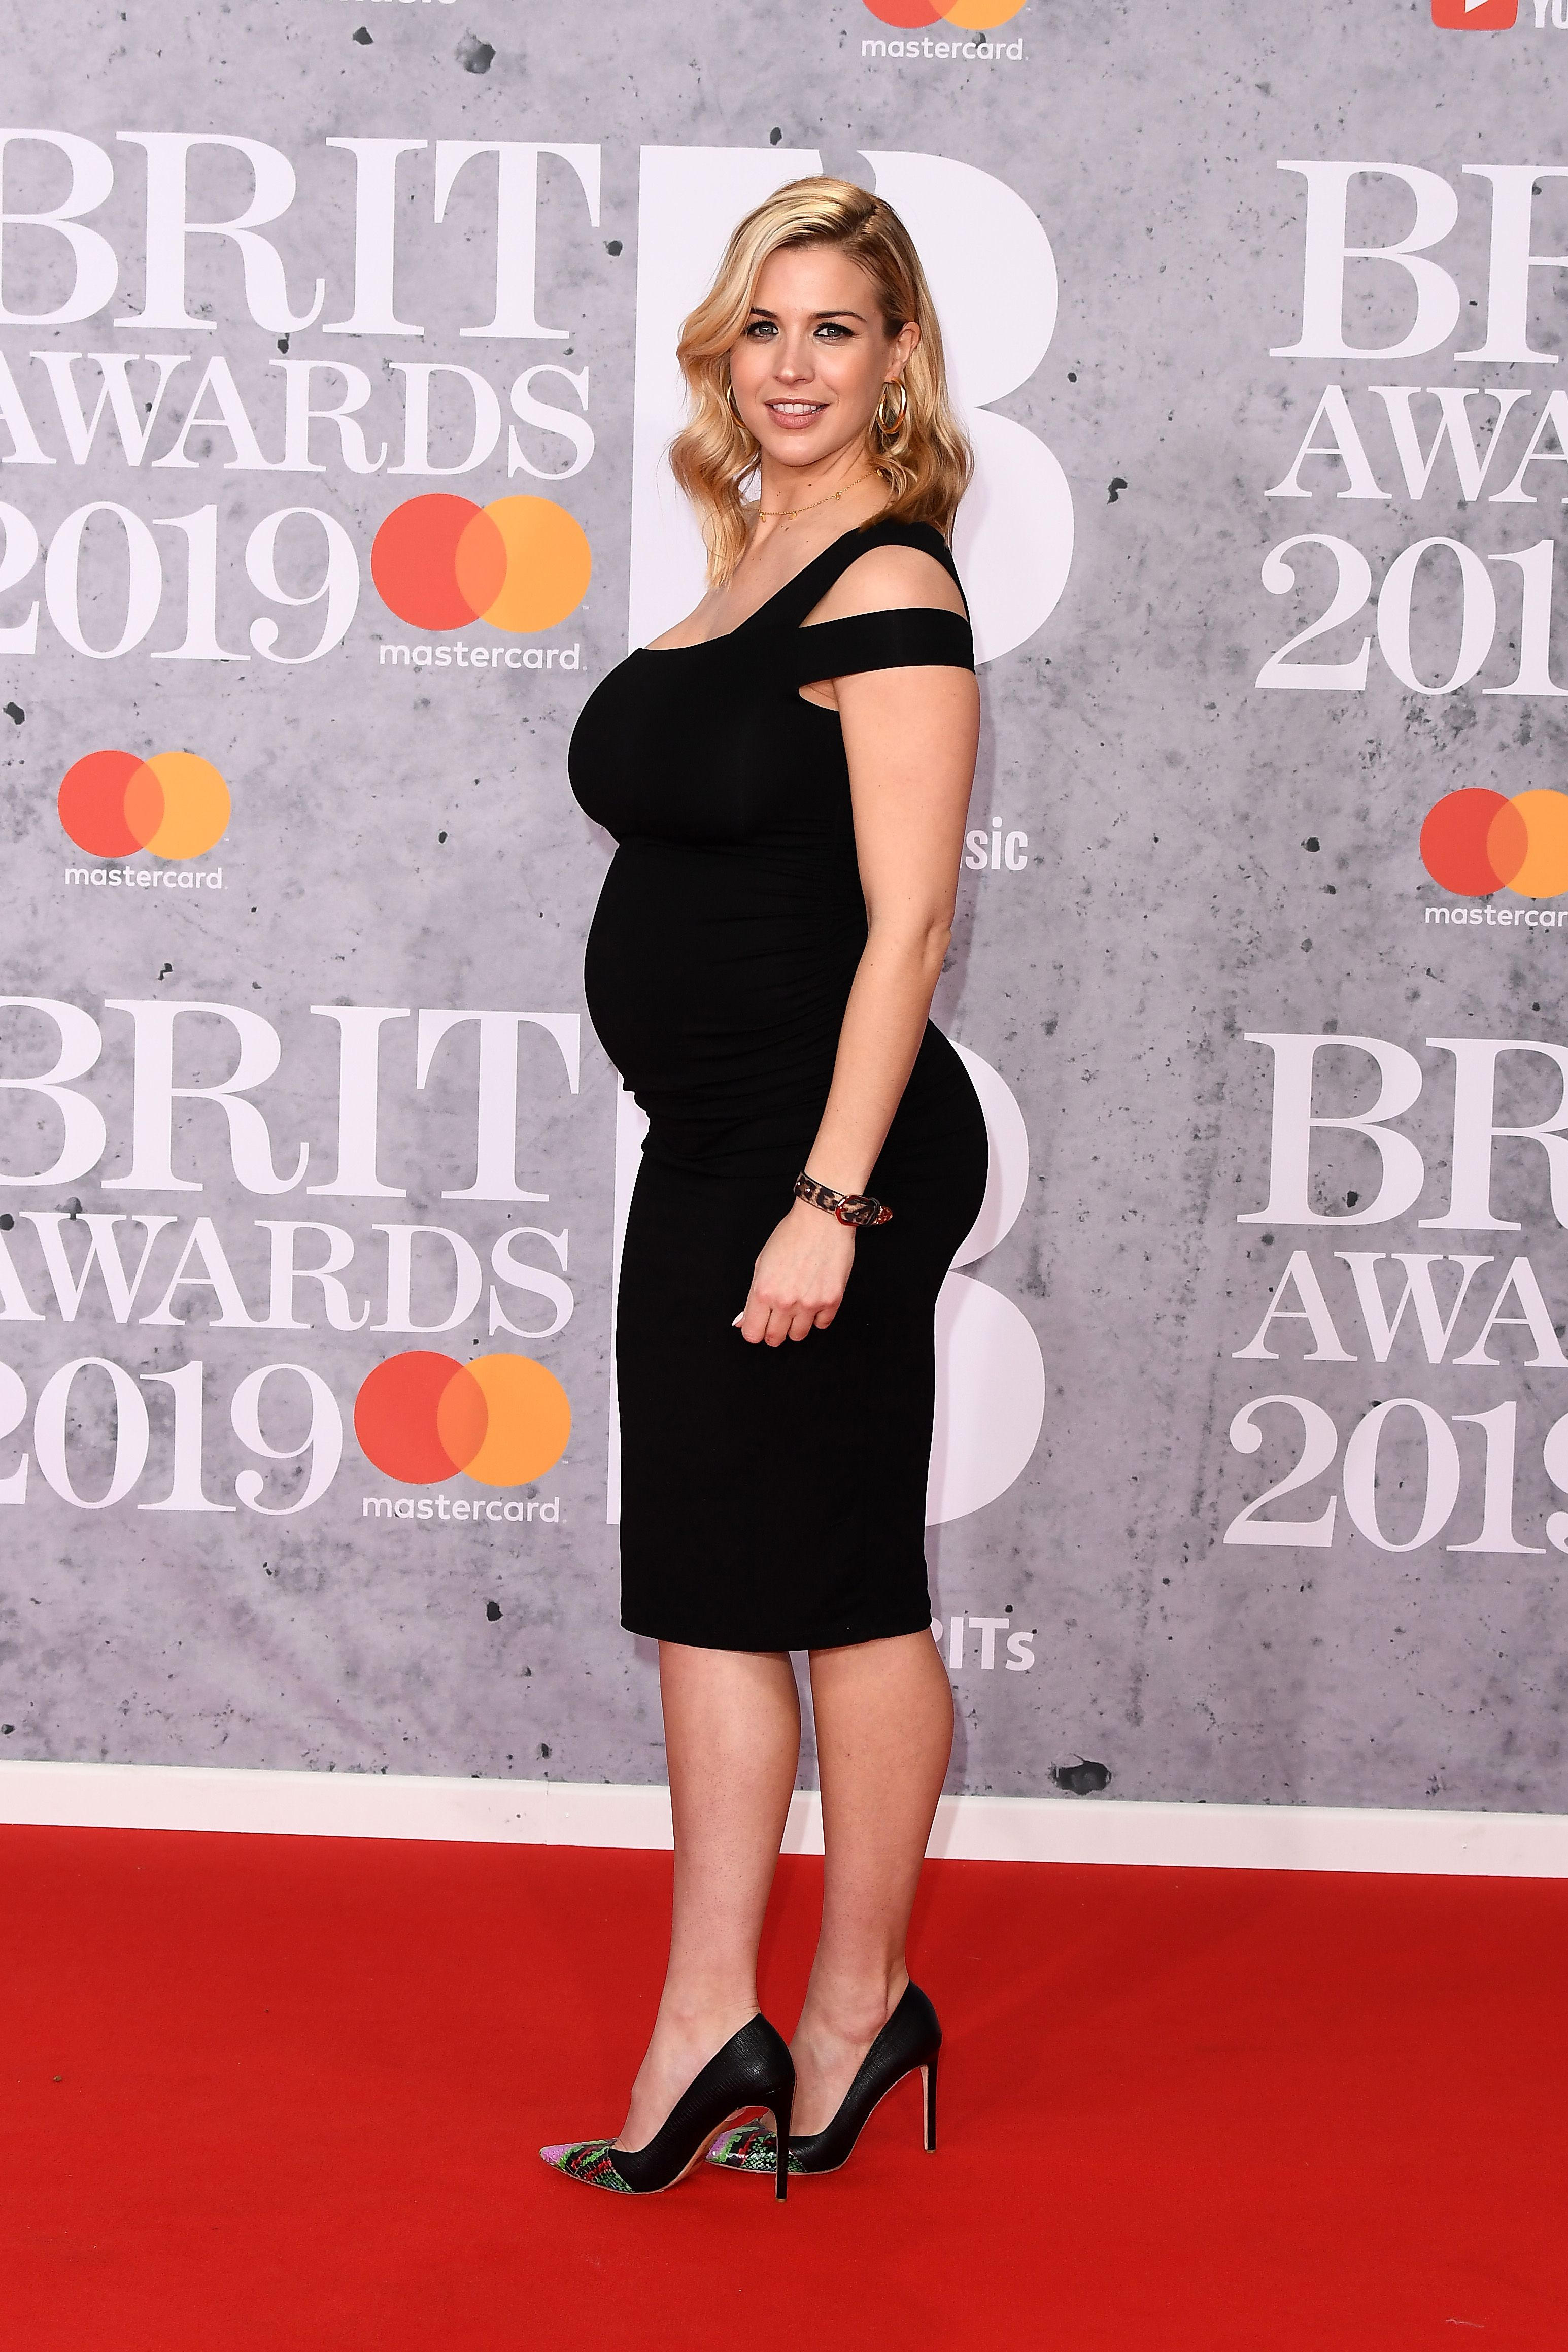 Gemma Atkinson Has Eaten This Nutritious Breakfast Daily since Giving Birth